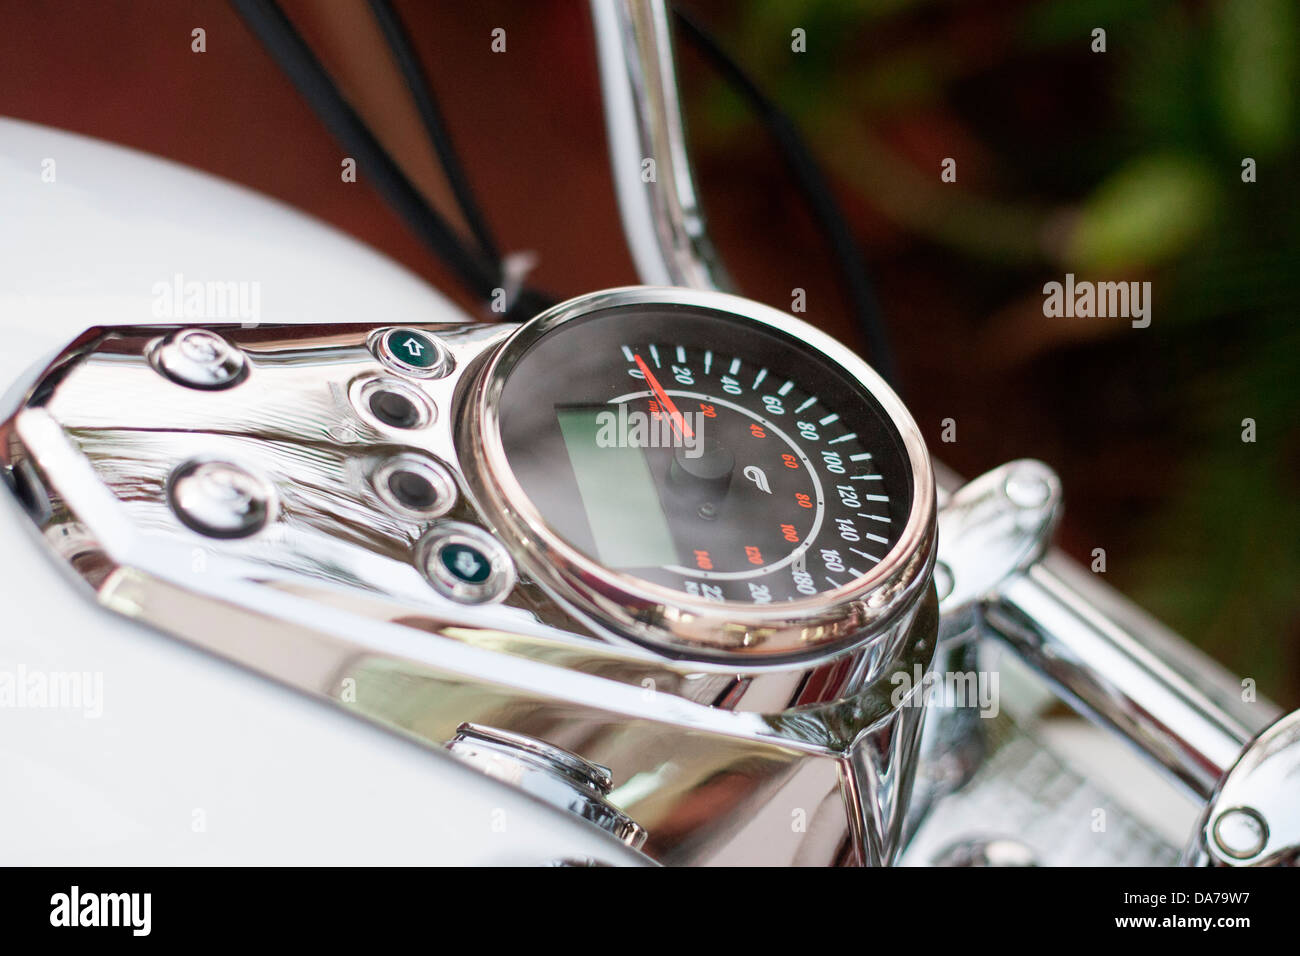 The Hyosung 700cc cruiser bike, one of the more affordable cruisers in India, shows the speedometer - Stock Image